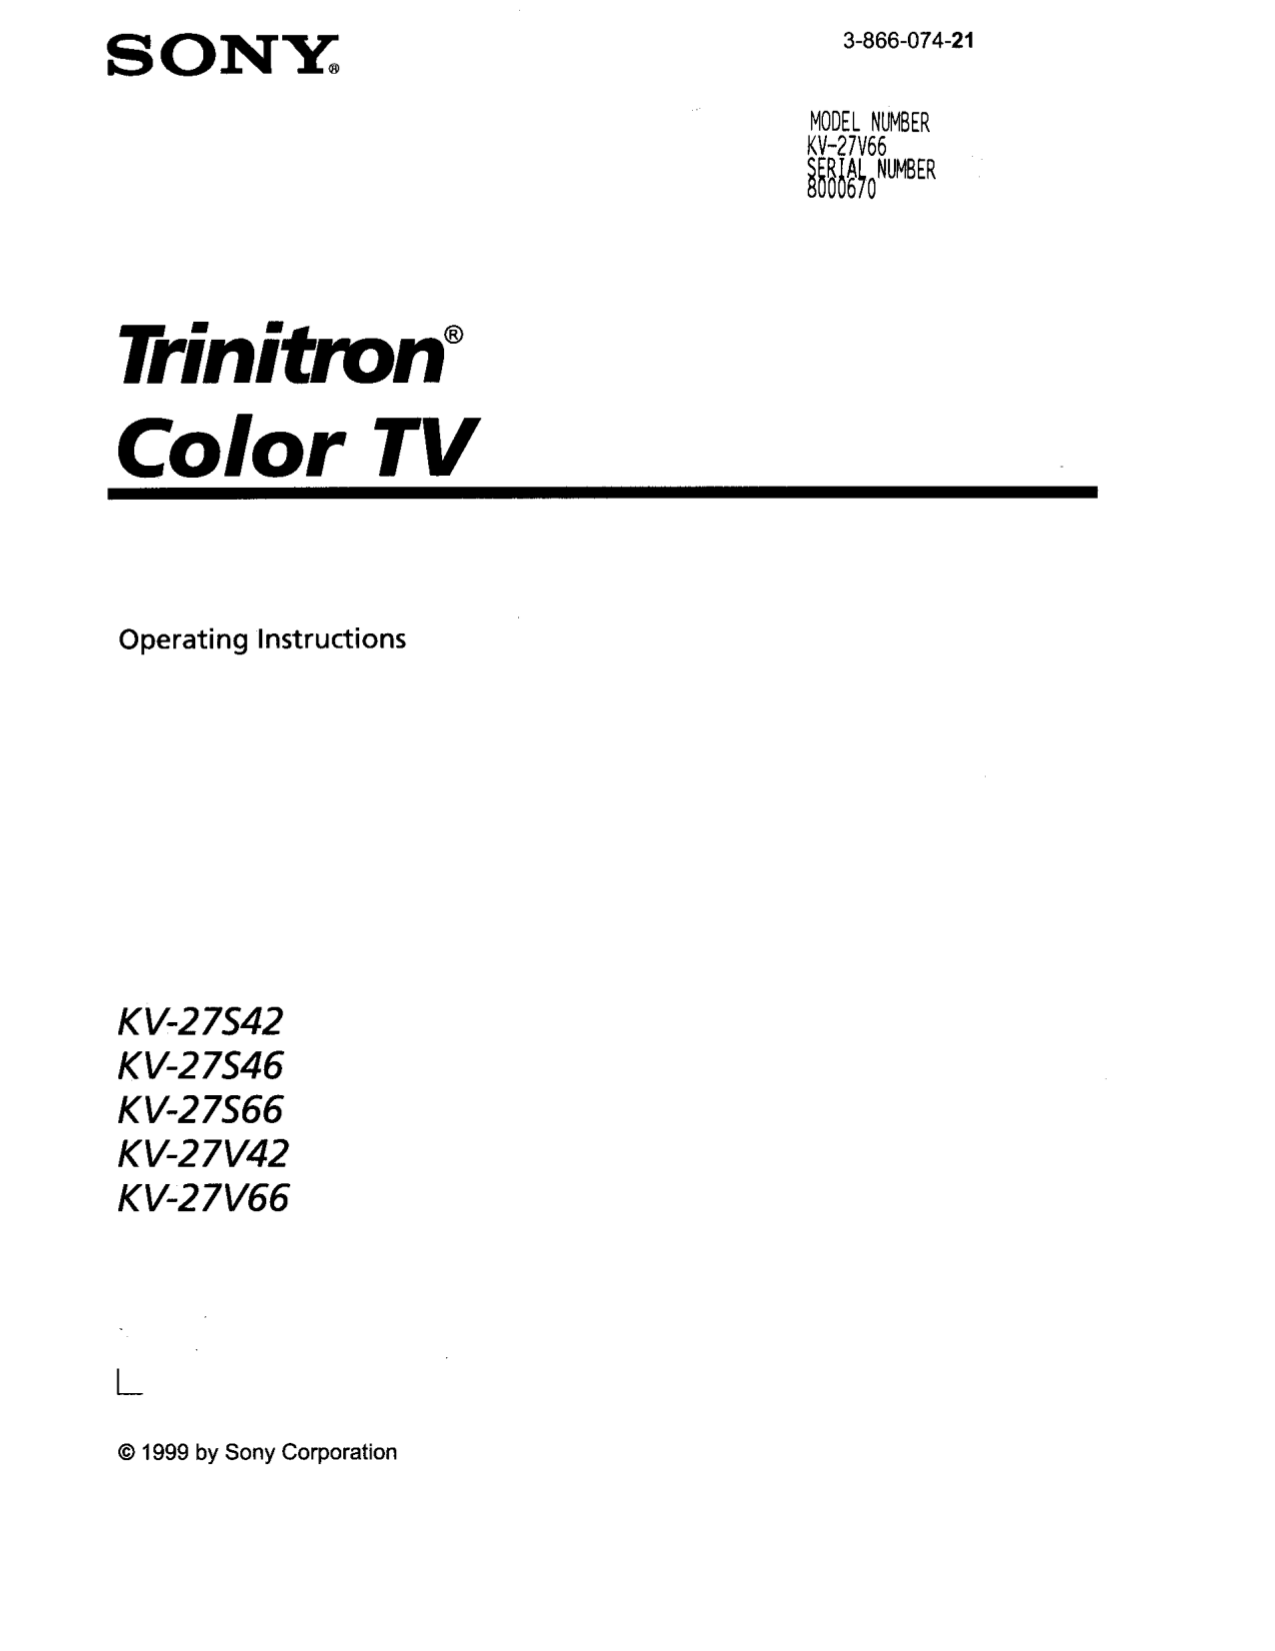 Download free pdf for Sony KV-27V42 TV manual